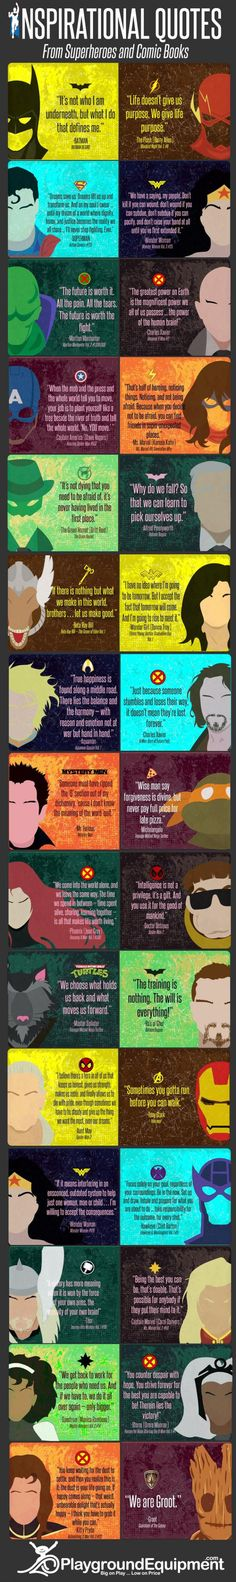 inspirational quotes from superheroes  | Inspirational Superhero Quotes | DailyFailCentral